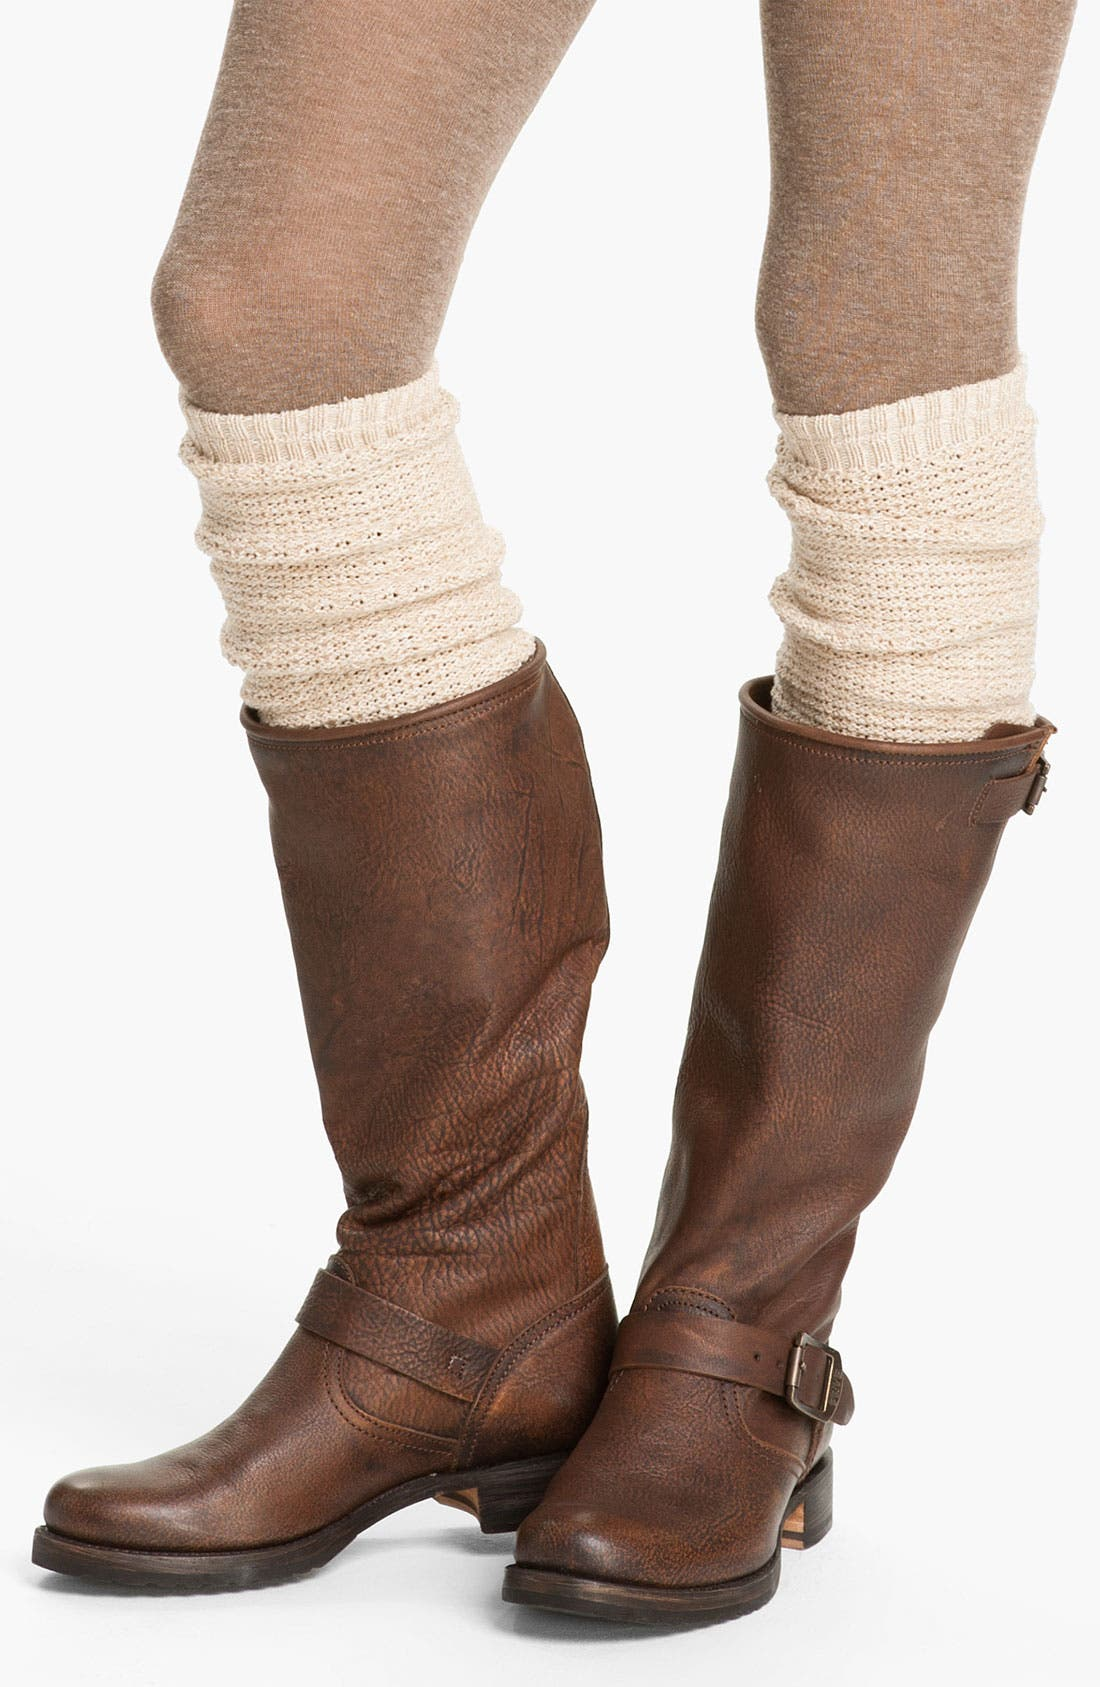 Alternate Image 1 Selected - Nordstrom Chunky Leg Warmers